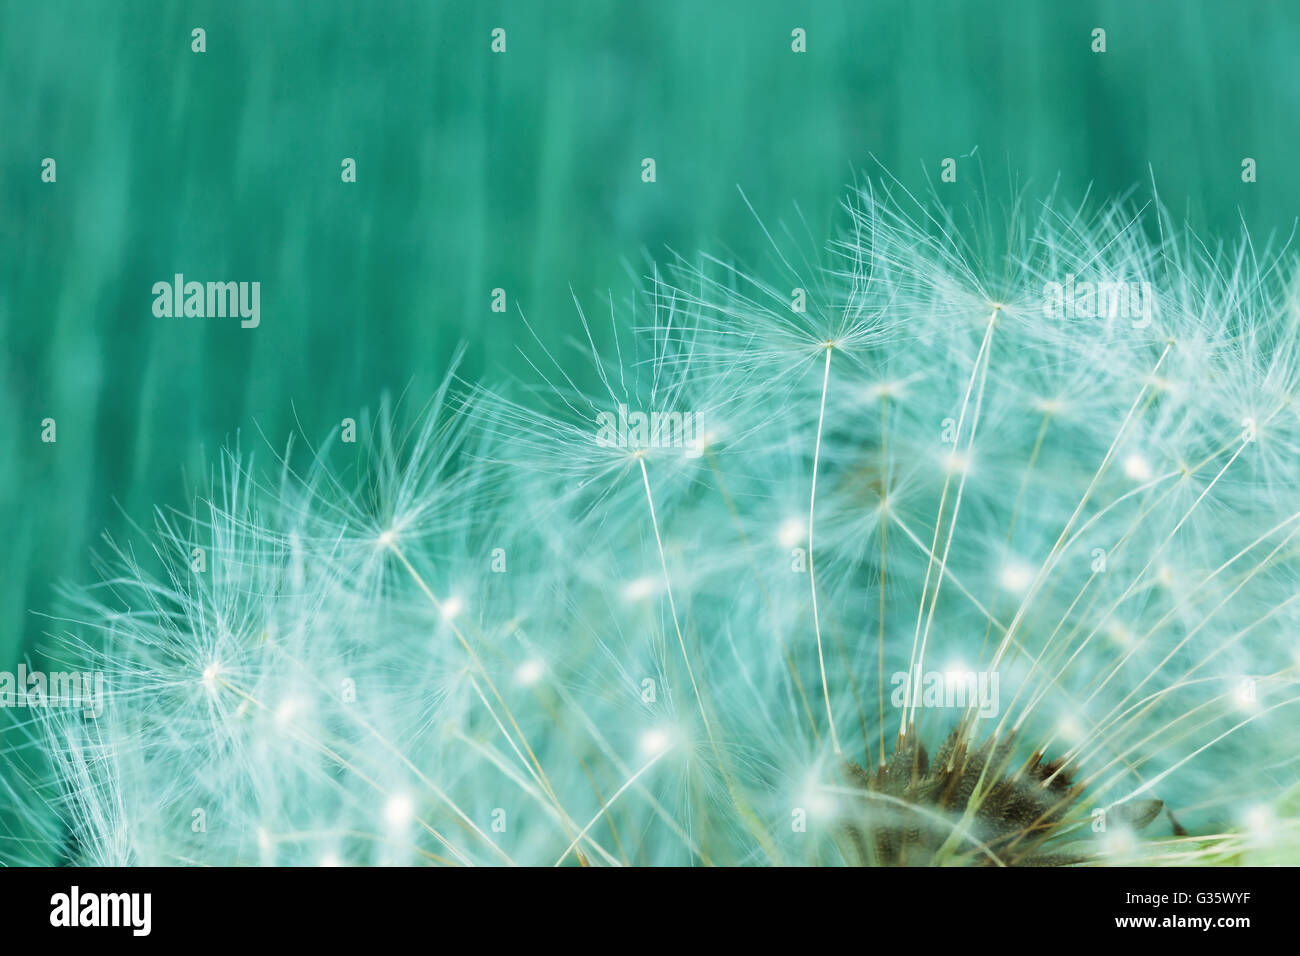 Dandelion Seeds Symbol Of Baldness Problems With Hair Stock